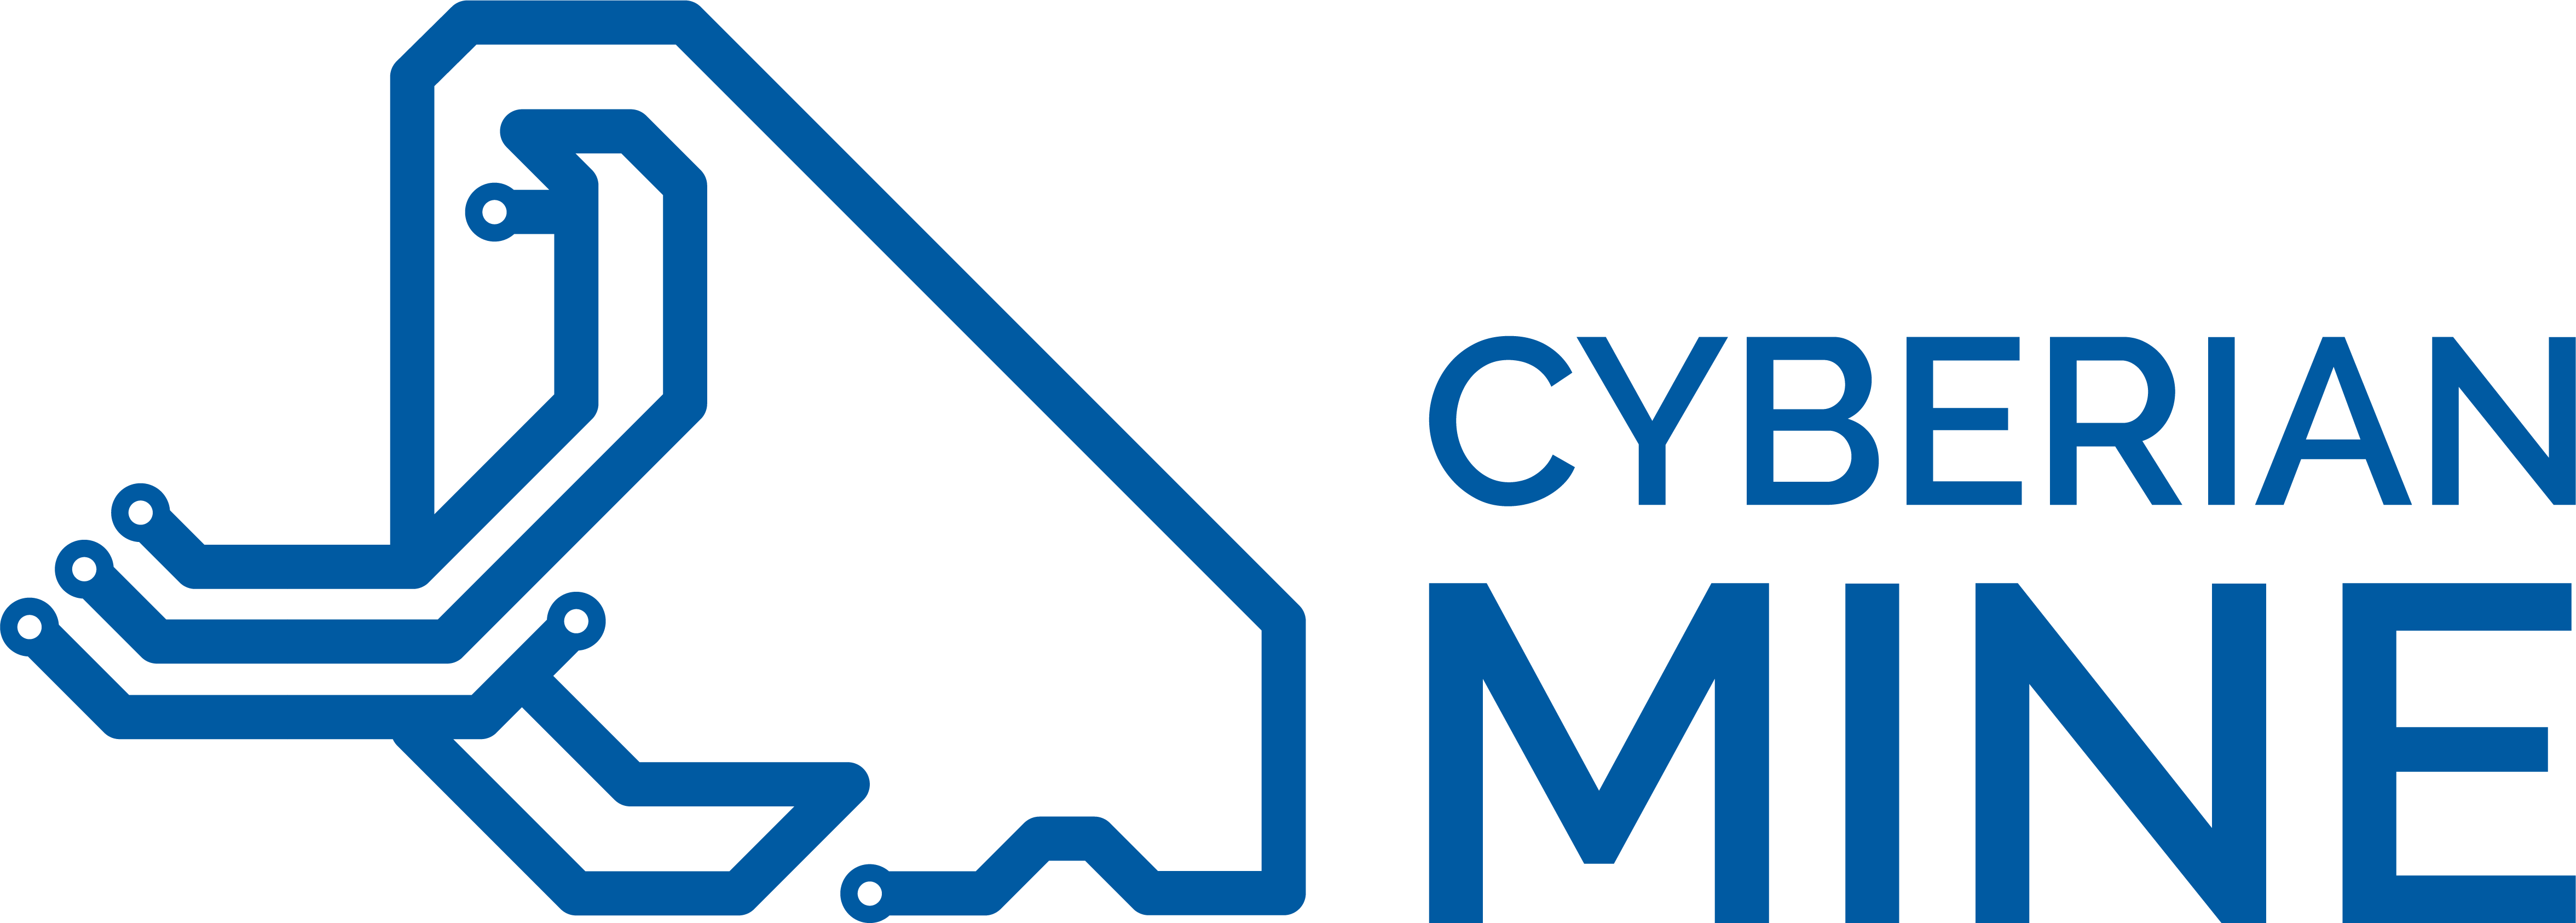 Cyberian Mine's Support Center Help Center home page